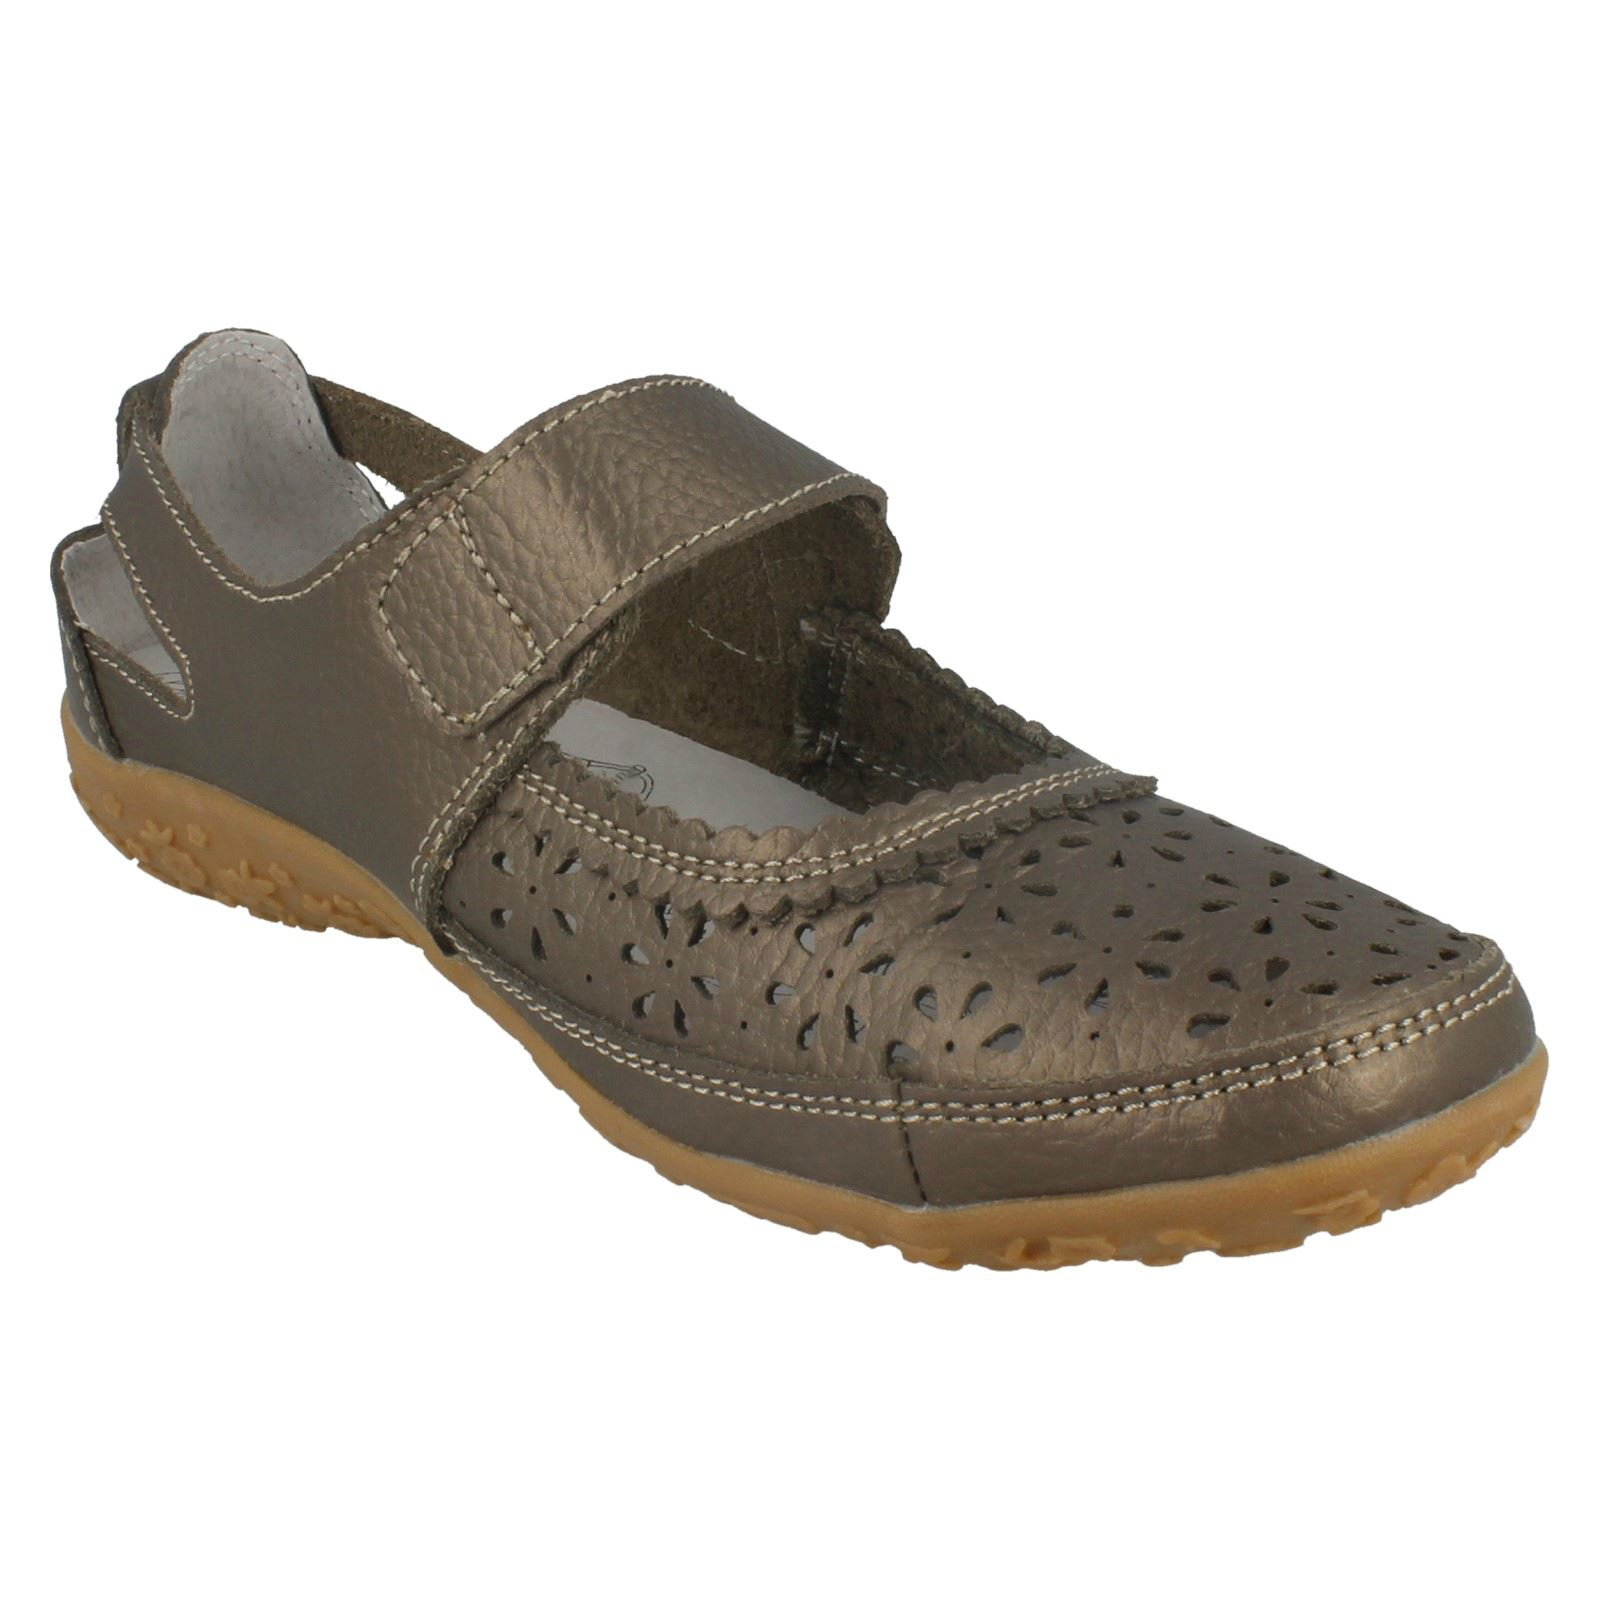 Lifestyle By Cushion Walk Ladies Shoes